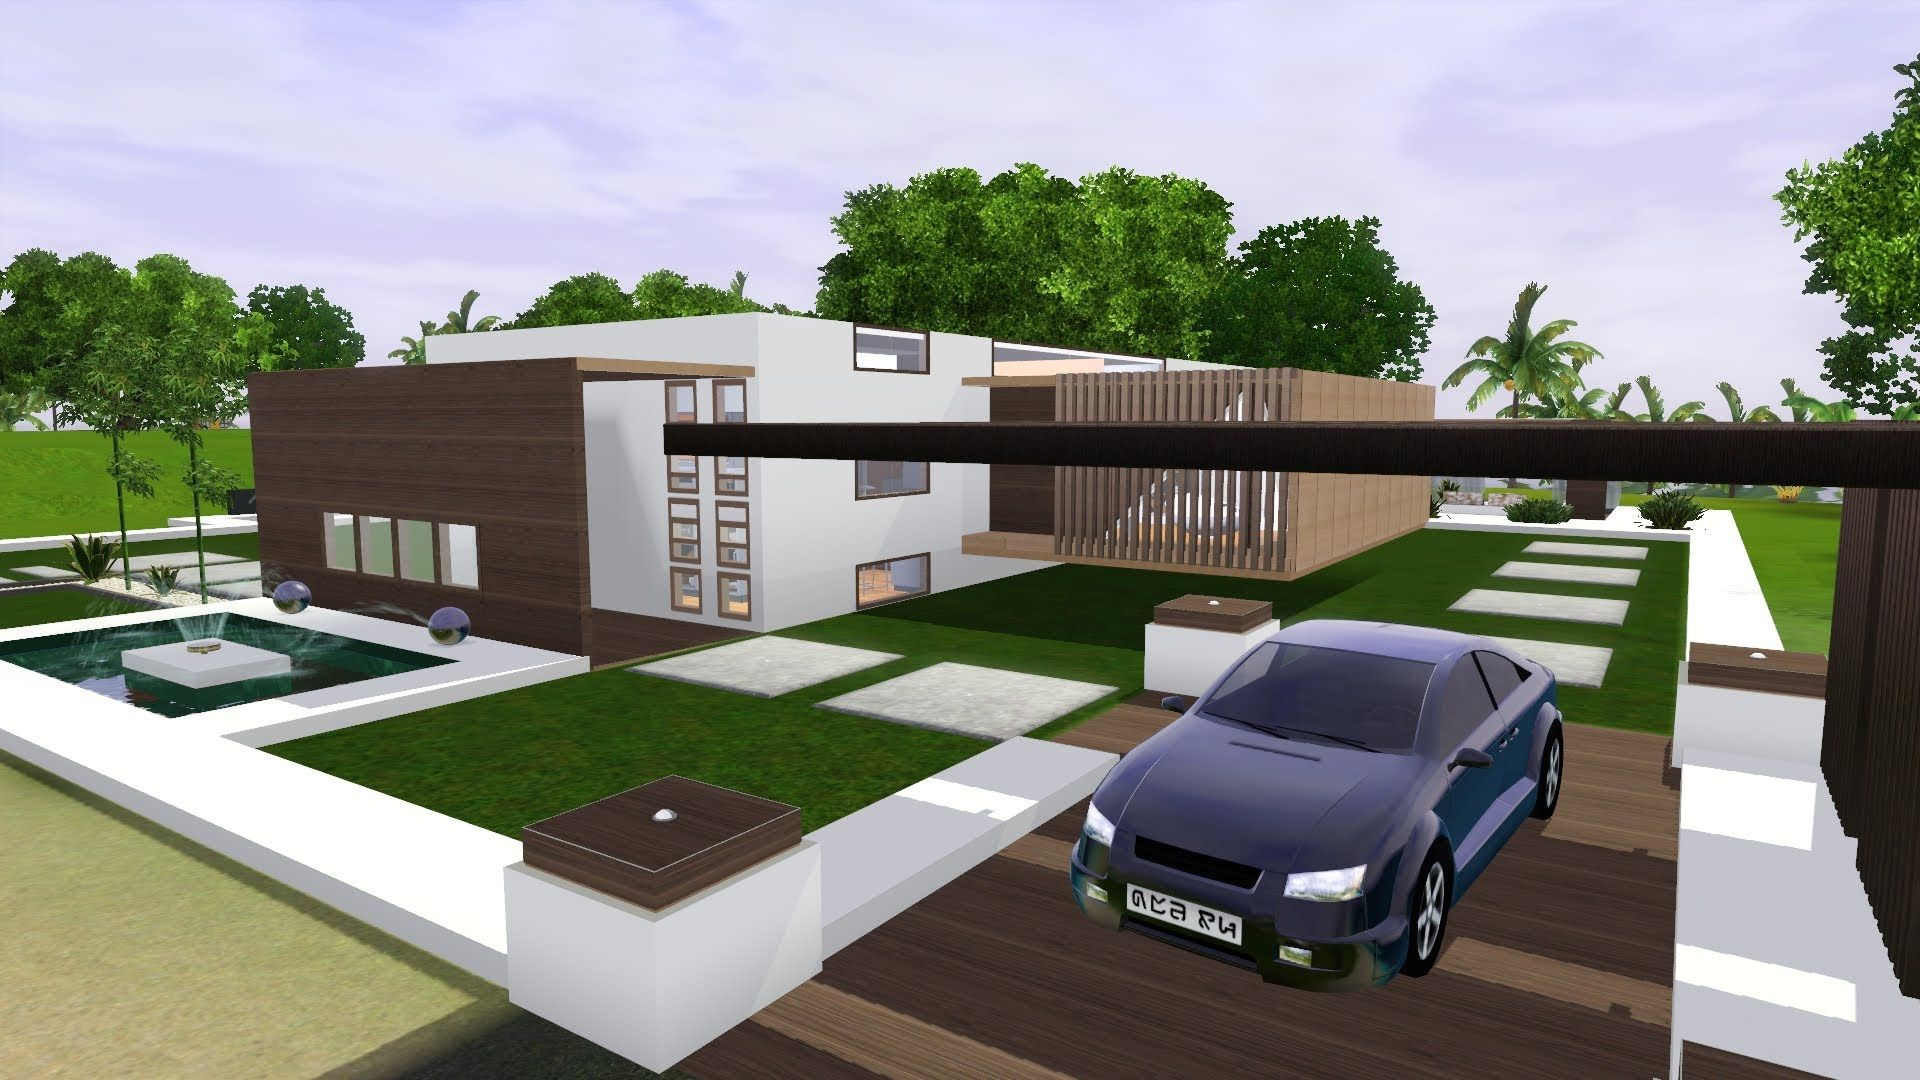 The Sims 3 Modern Minimalist House Paradise Hd The Good